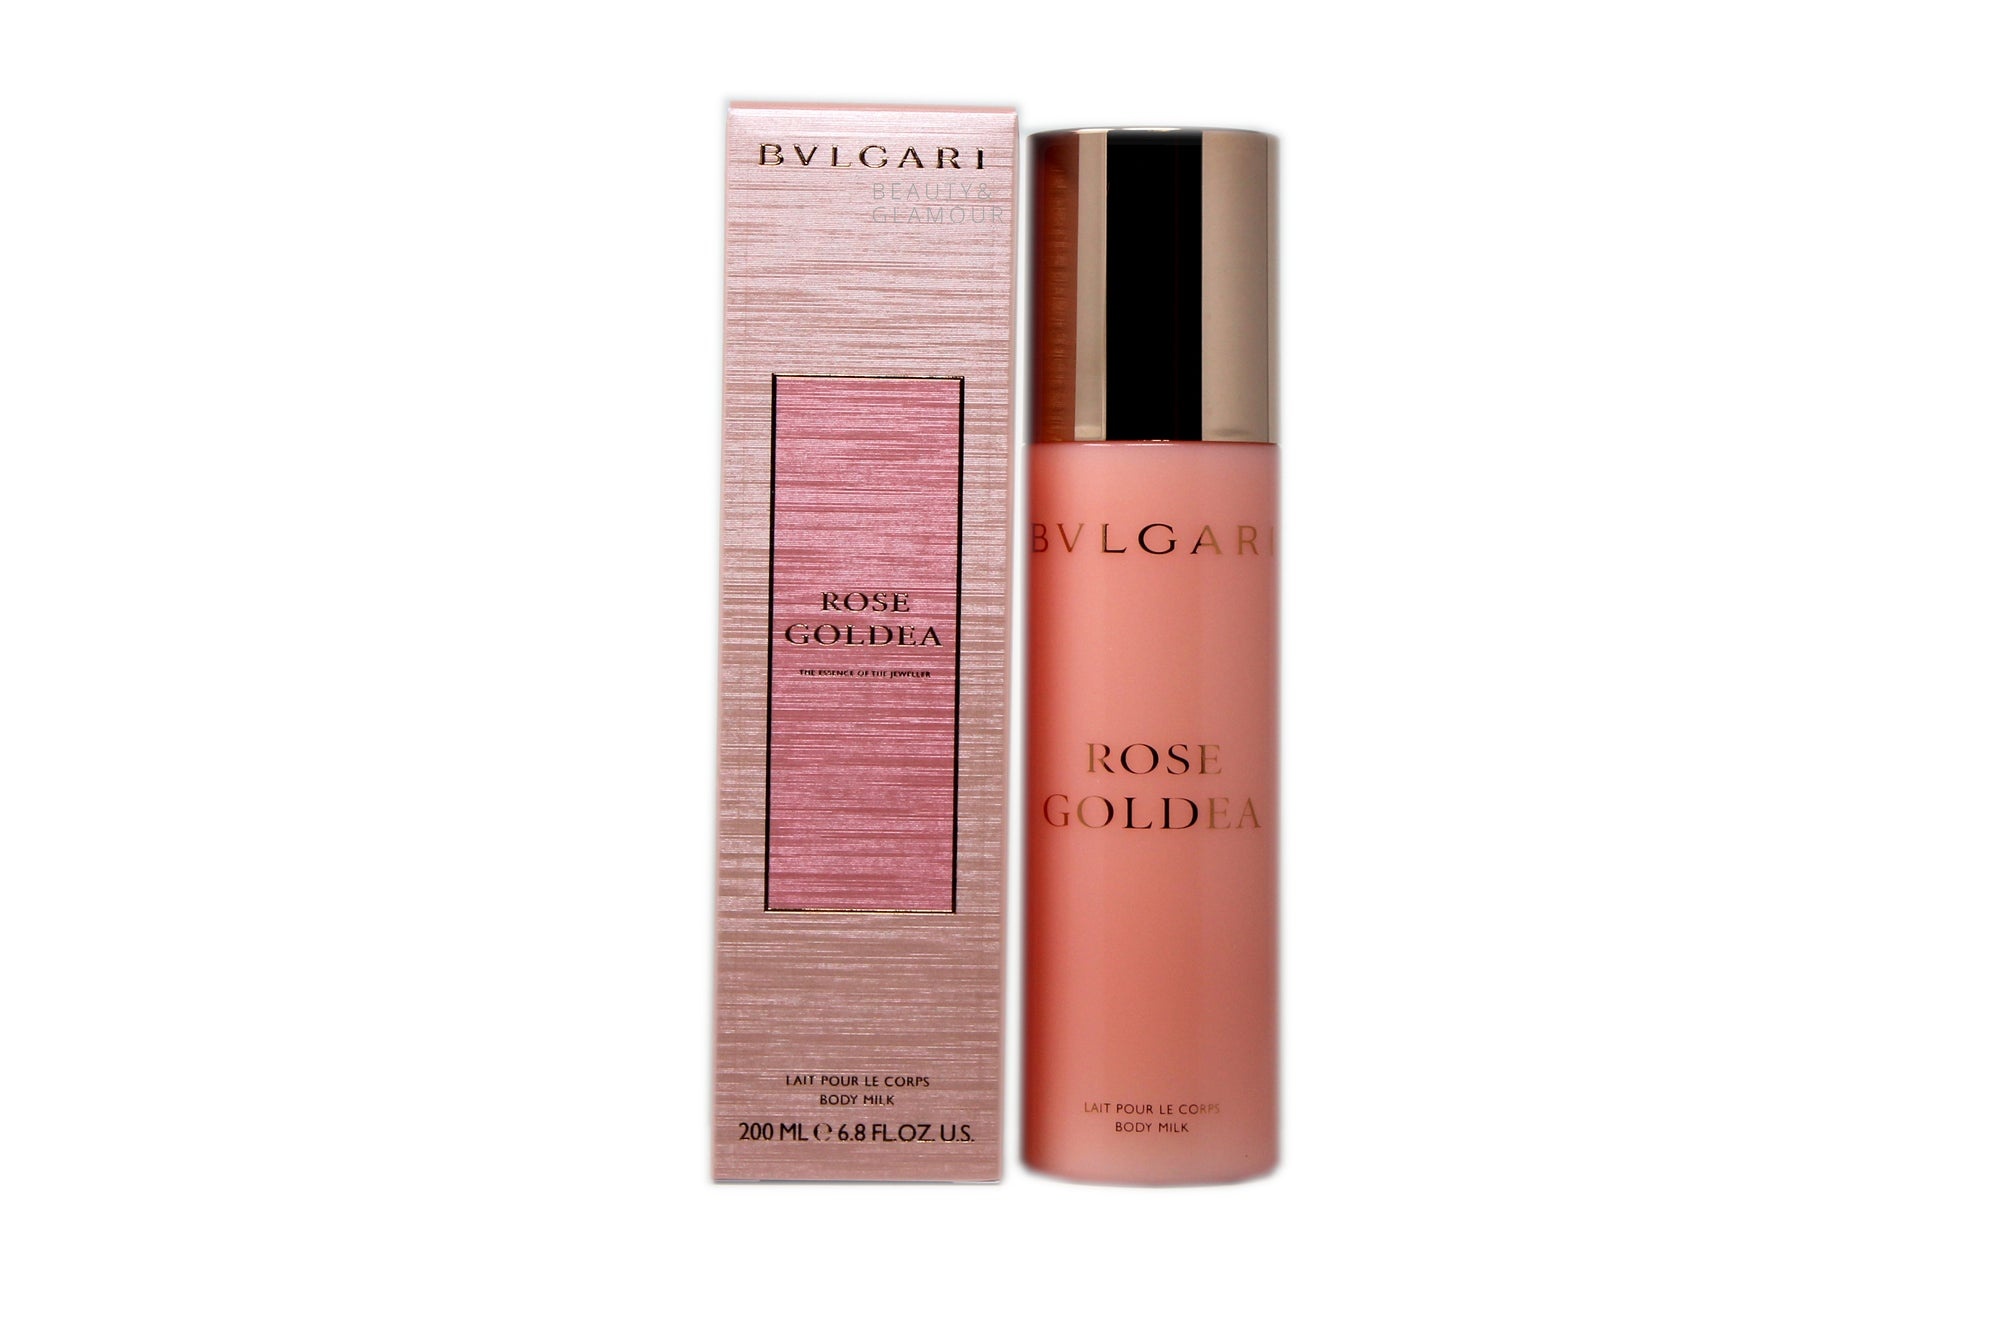 BVLGARI ROSE GOLDEA BODY MILK